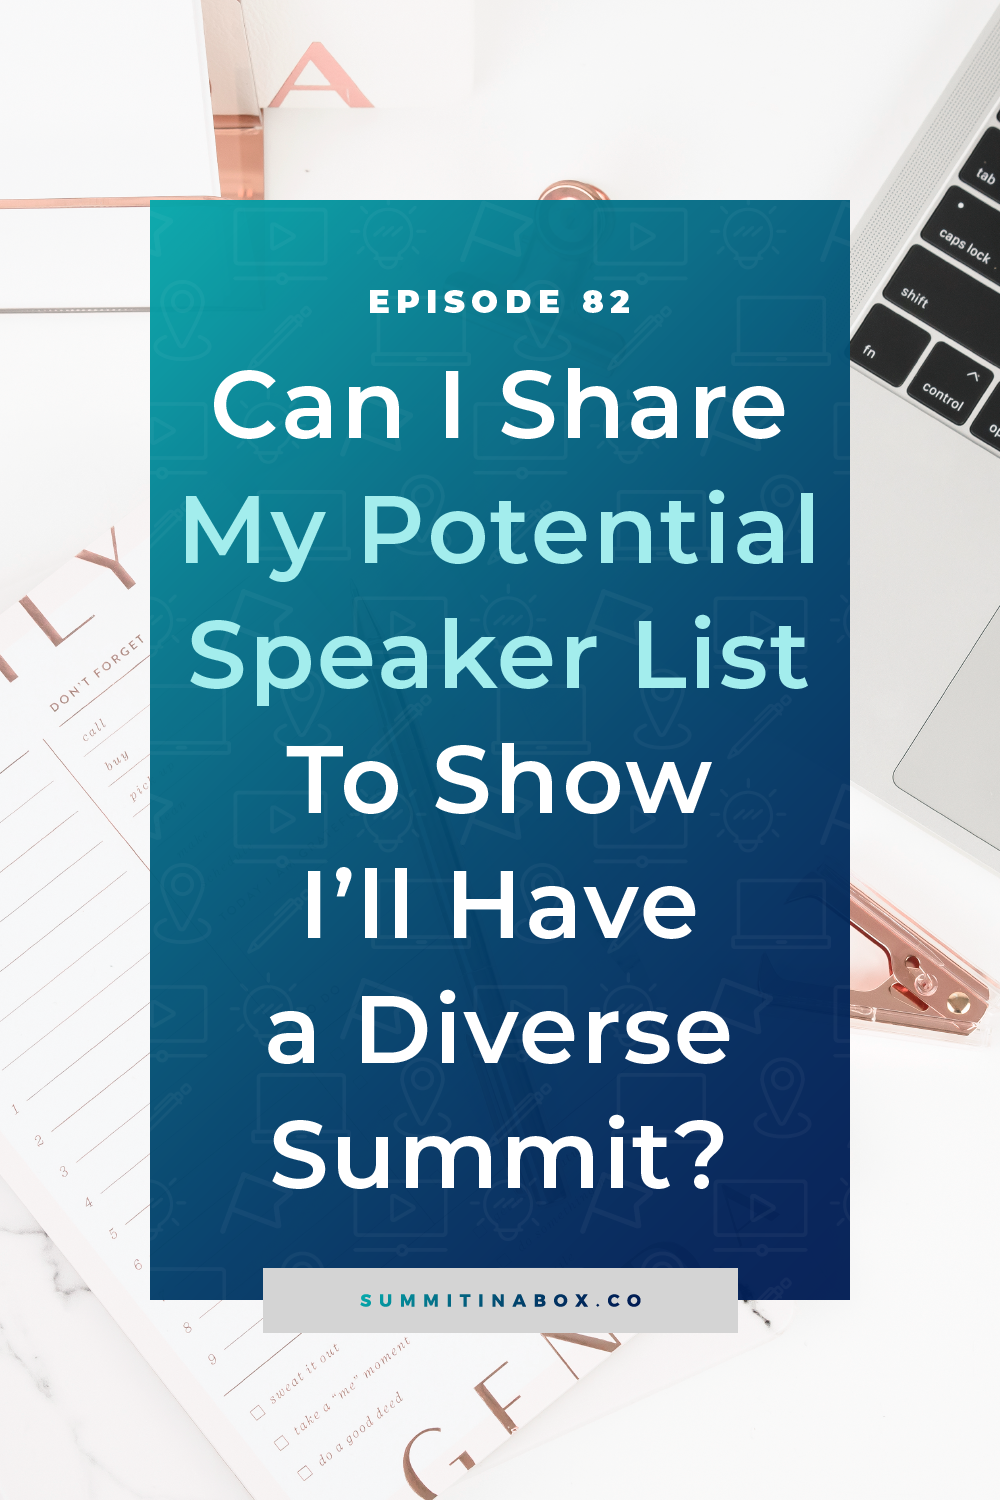 Have you been asked to share your speaker list, before it's final, to illustrate that you'll have a diverse virtual summit? Is it even okay to do that?